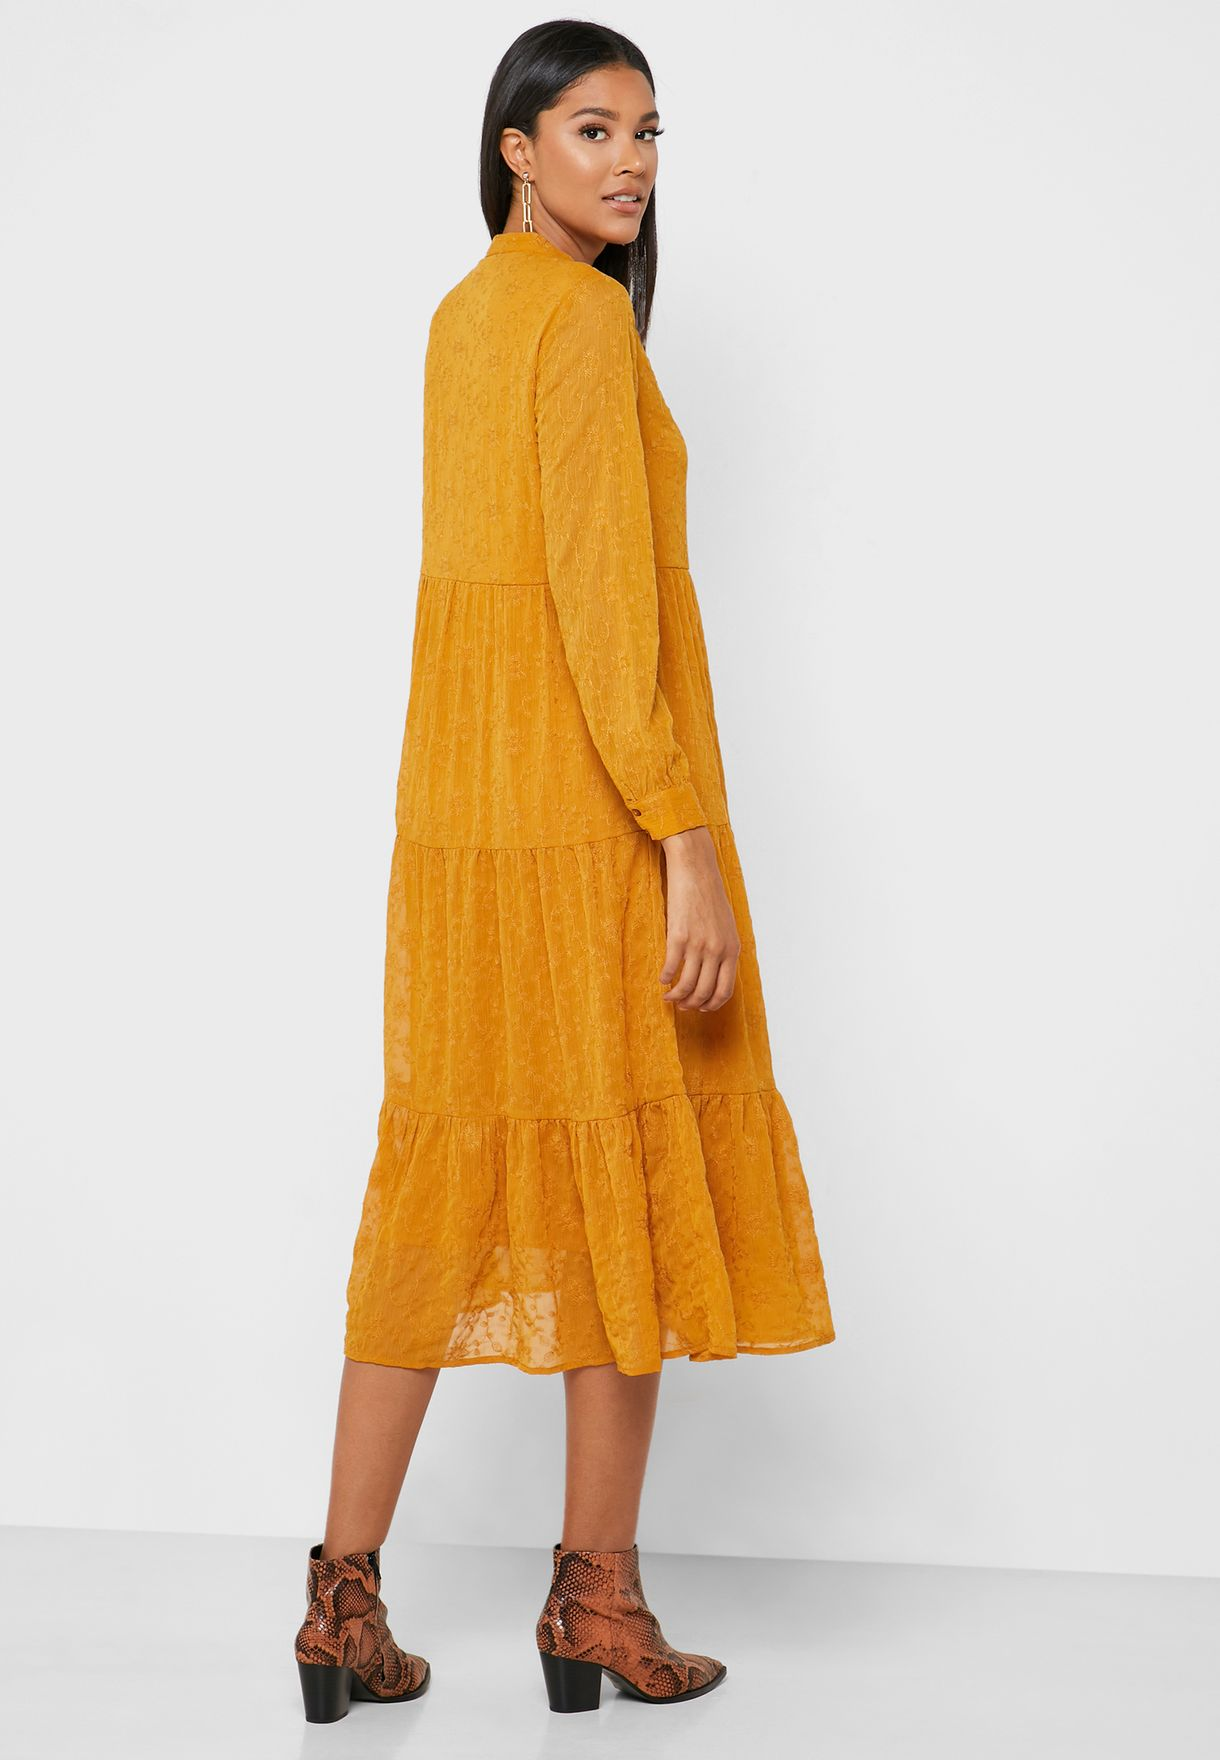 Buy Pieces Yellow Embroidered Button Down Dress For Women, Uae 57552at92dwp